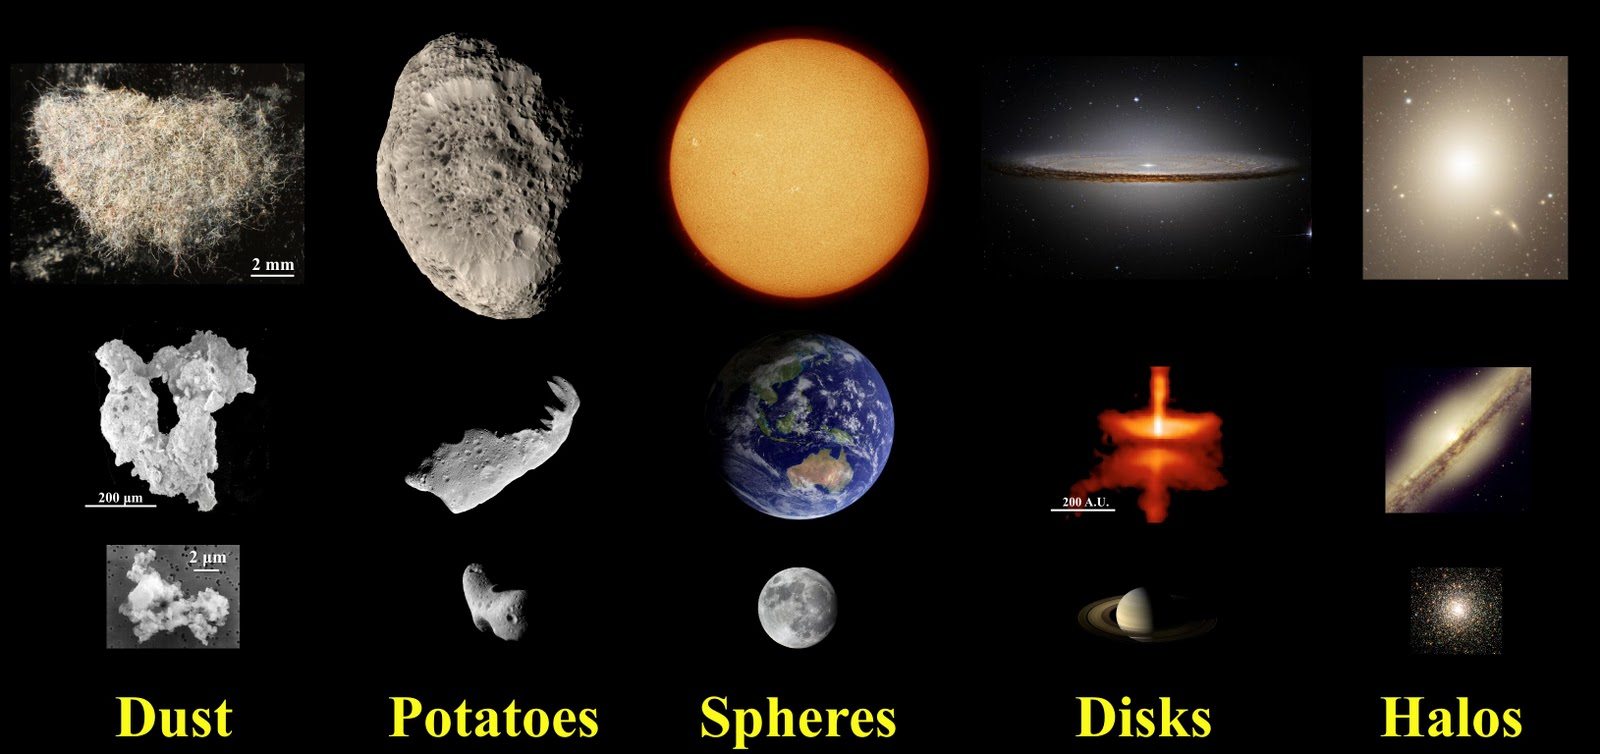 Why Don T Terrestrial Planets Have Rings Like The Jovian Planets